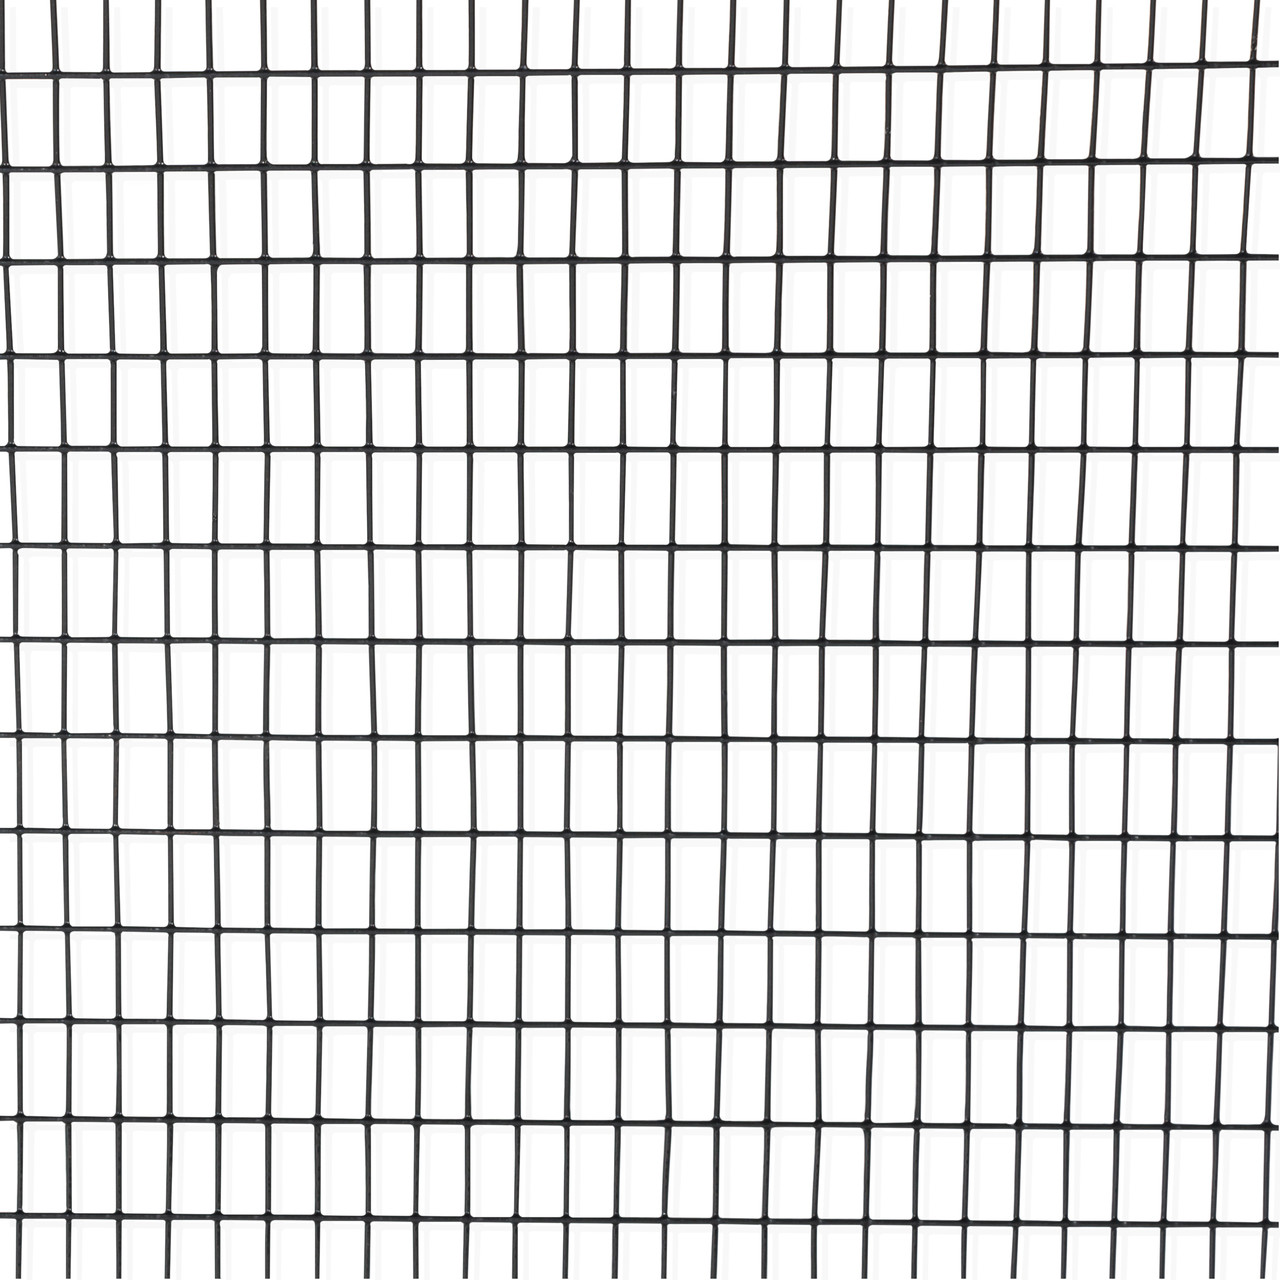 16 Gauge Black Vinyl Coated Welded Wire Mesh Size 0 5 Inch By 1 Inch